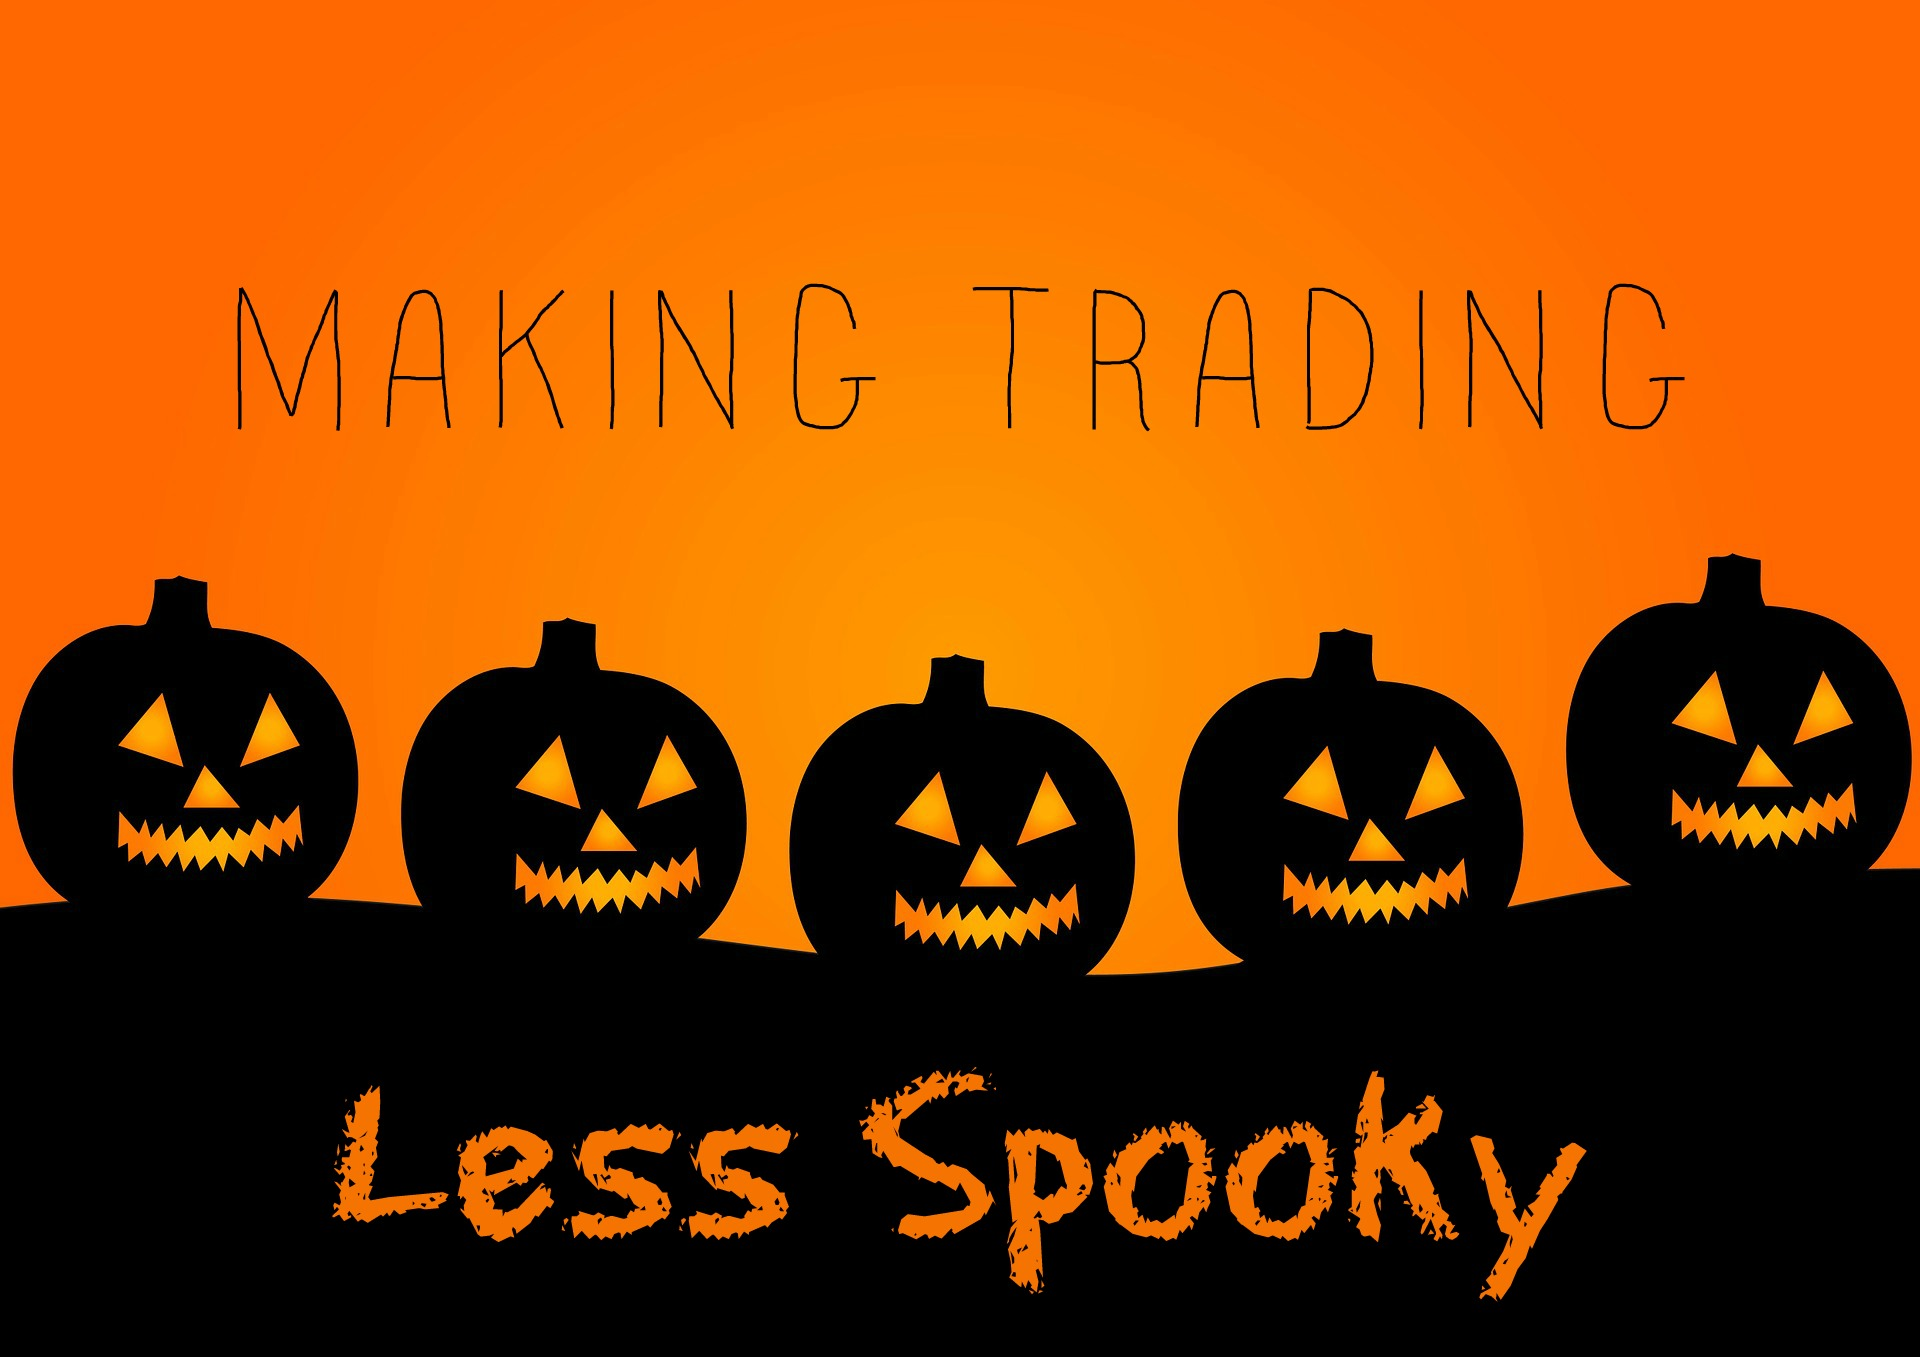 trading the markets